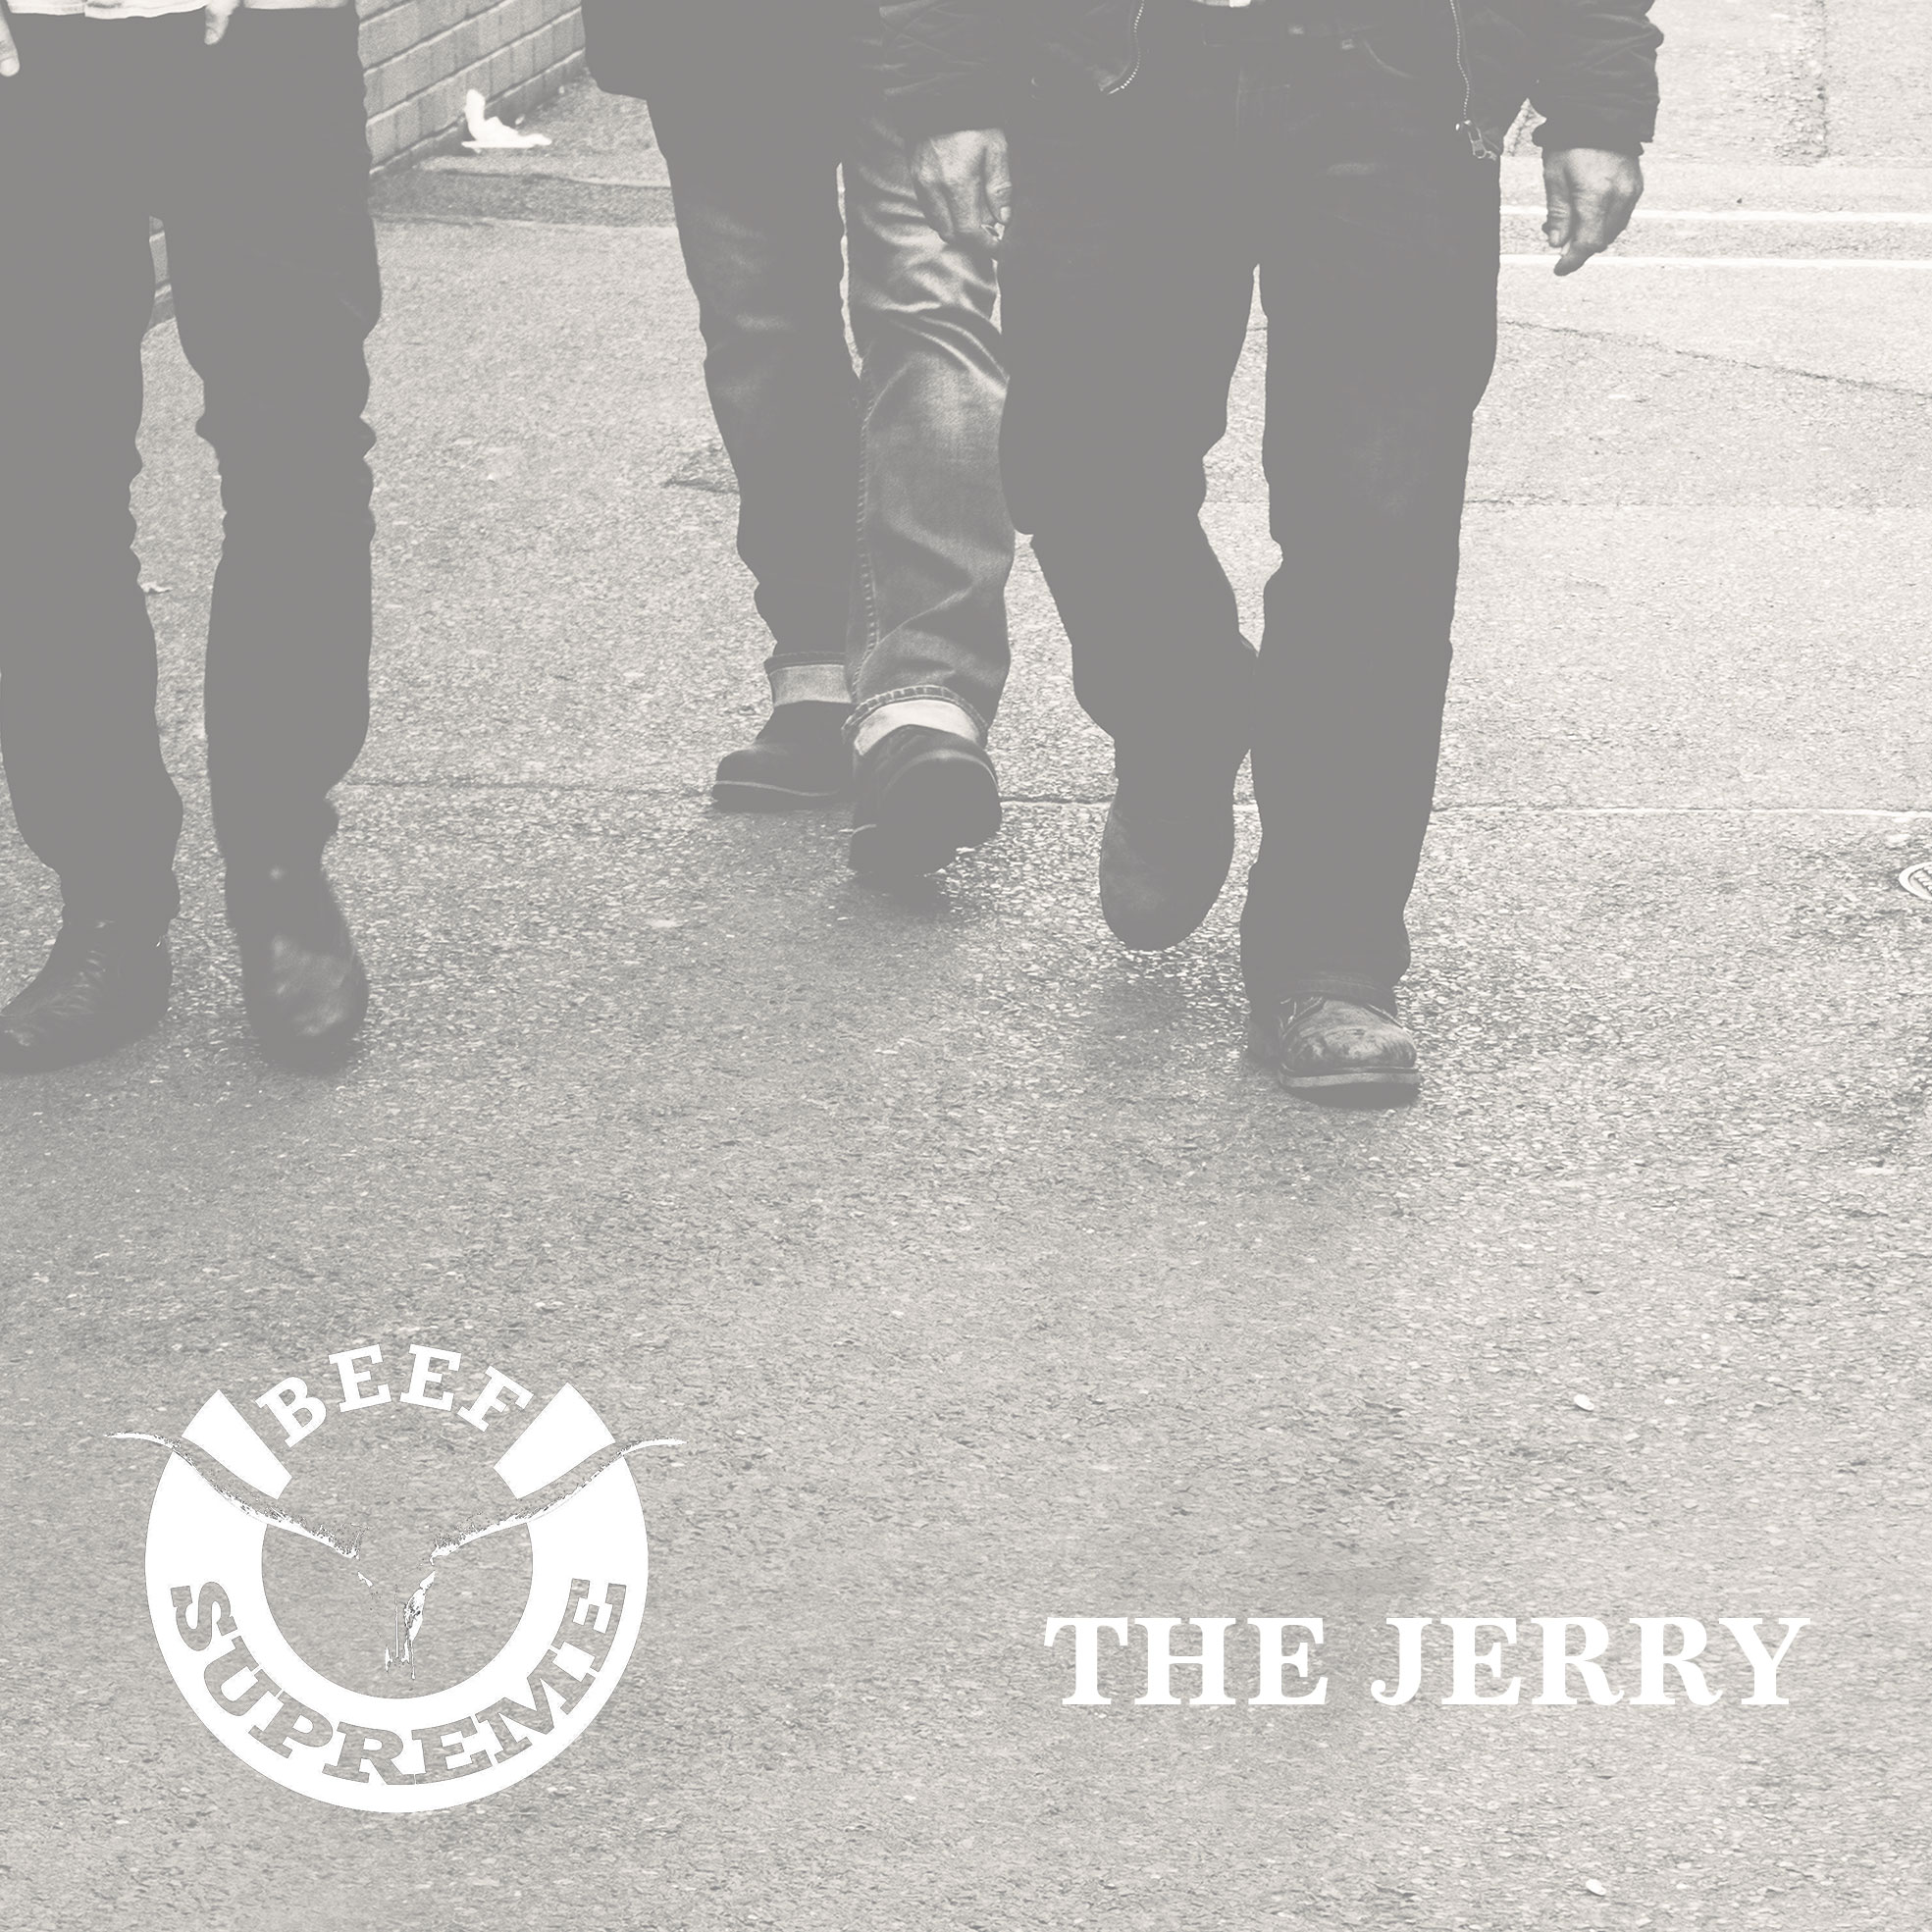 Download The Jerry